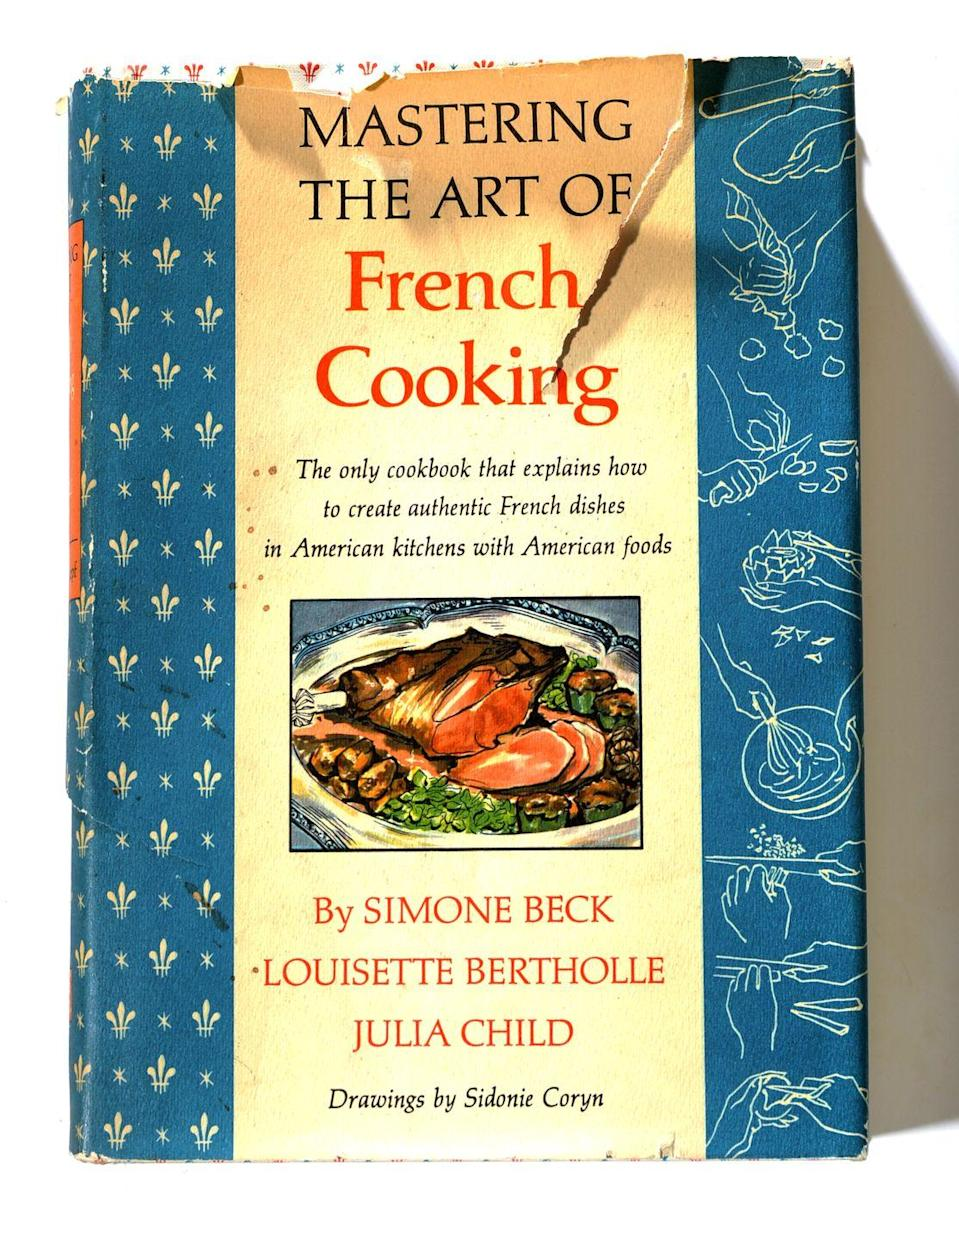 """<p>Julia Child is one of America's favorite chefs, and her first cookbook swept the nation when it was published in 1961. If you've hung onto an original copy, you may be in the market for more than just a satisfied appetite—<a href=""""https://go.redirectingat.com?id=74968X1596630&url=https%3A%2F%2Fwww.abebooks.com%2Fservlet%2FBookDetailsPL&sref=https%3A%2F%2Fwww.redbookmag.com%2Fhome%2Fg34076722%2Fvaluable-antiques%2F"""" rel=""""nofollow noopener"""" target=""""_blank"""" data-ylk=""""slk:a first edition in good condition"""" class=""""link rapid-noclick-resp"""">a first edition in good condition</a> with the original jacket is rare and earns top dollar on Ebay and other online auctions sites. </p><p><strong>What it's worth: </strong>$2,000 and up</p>"""